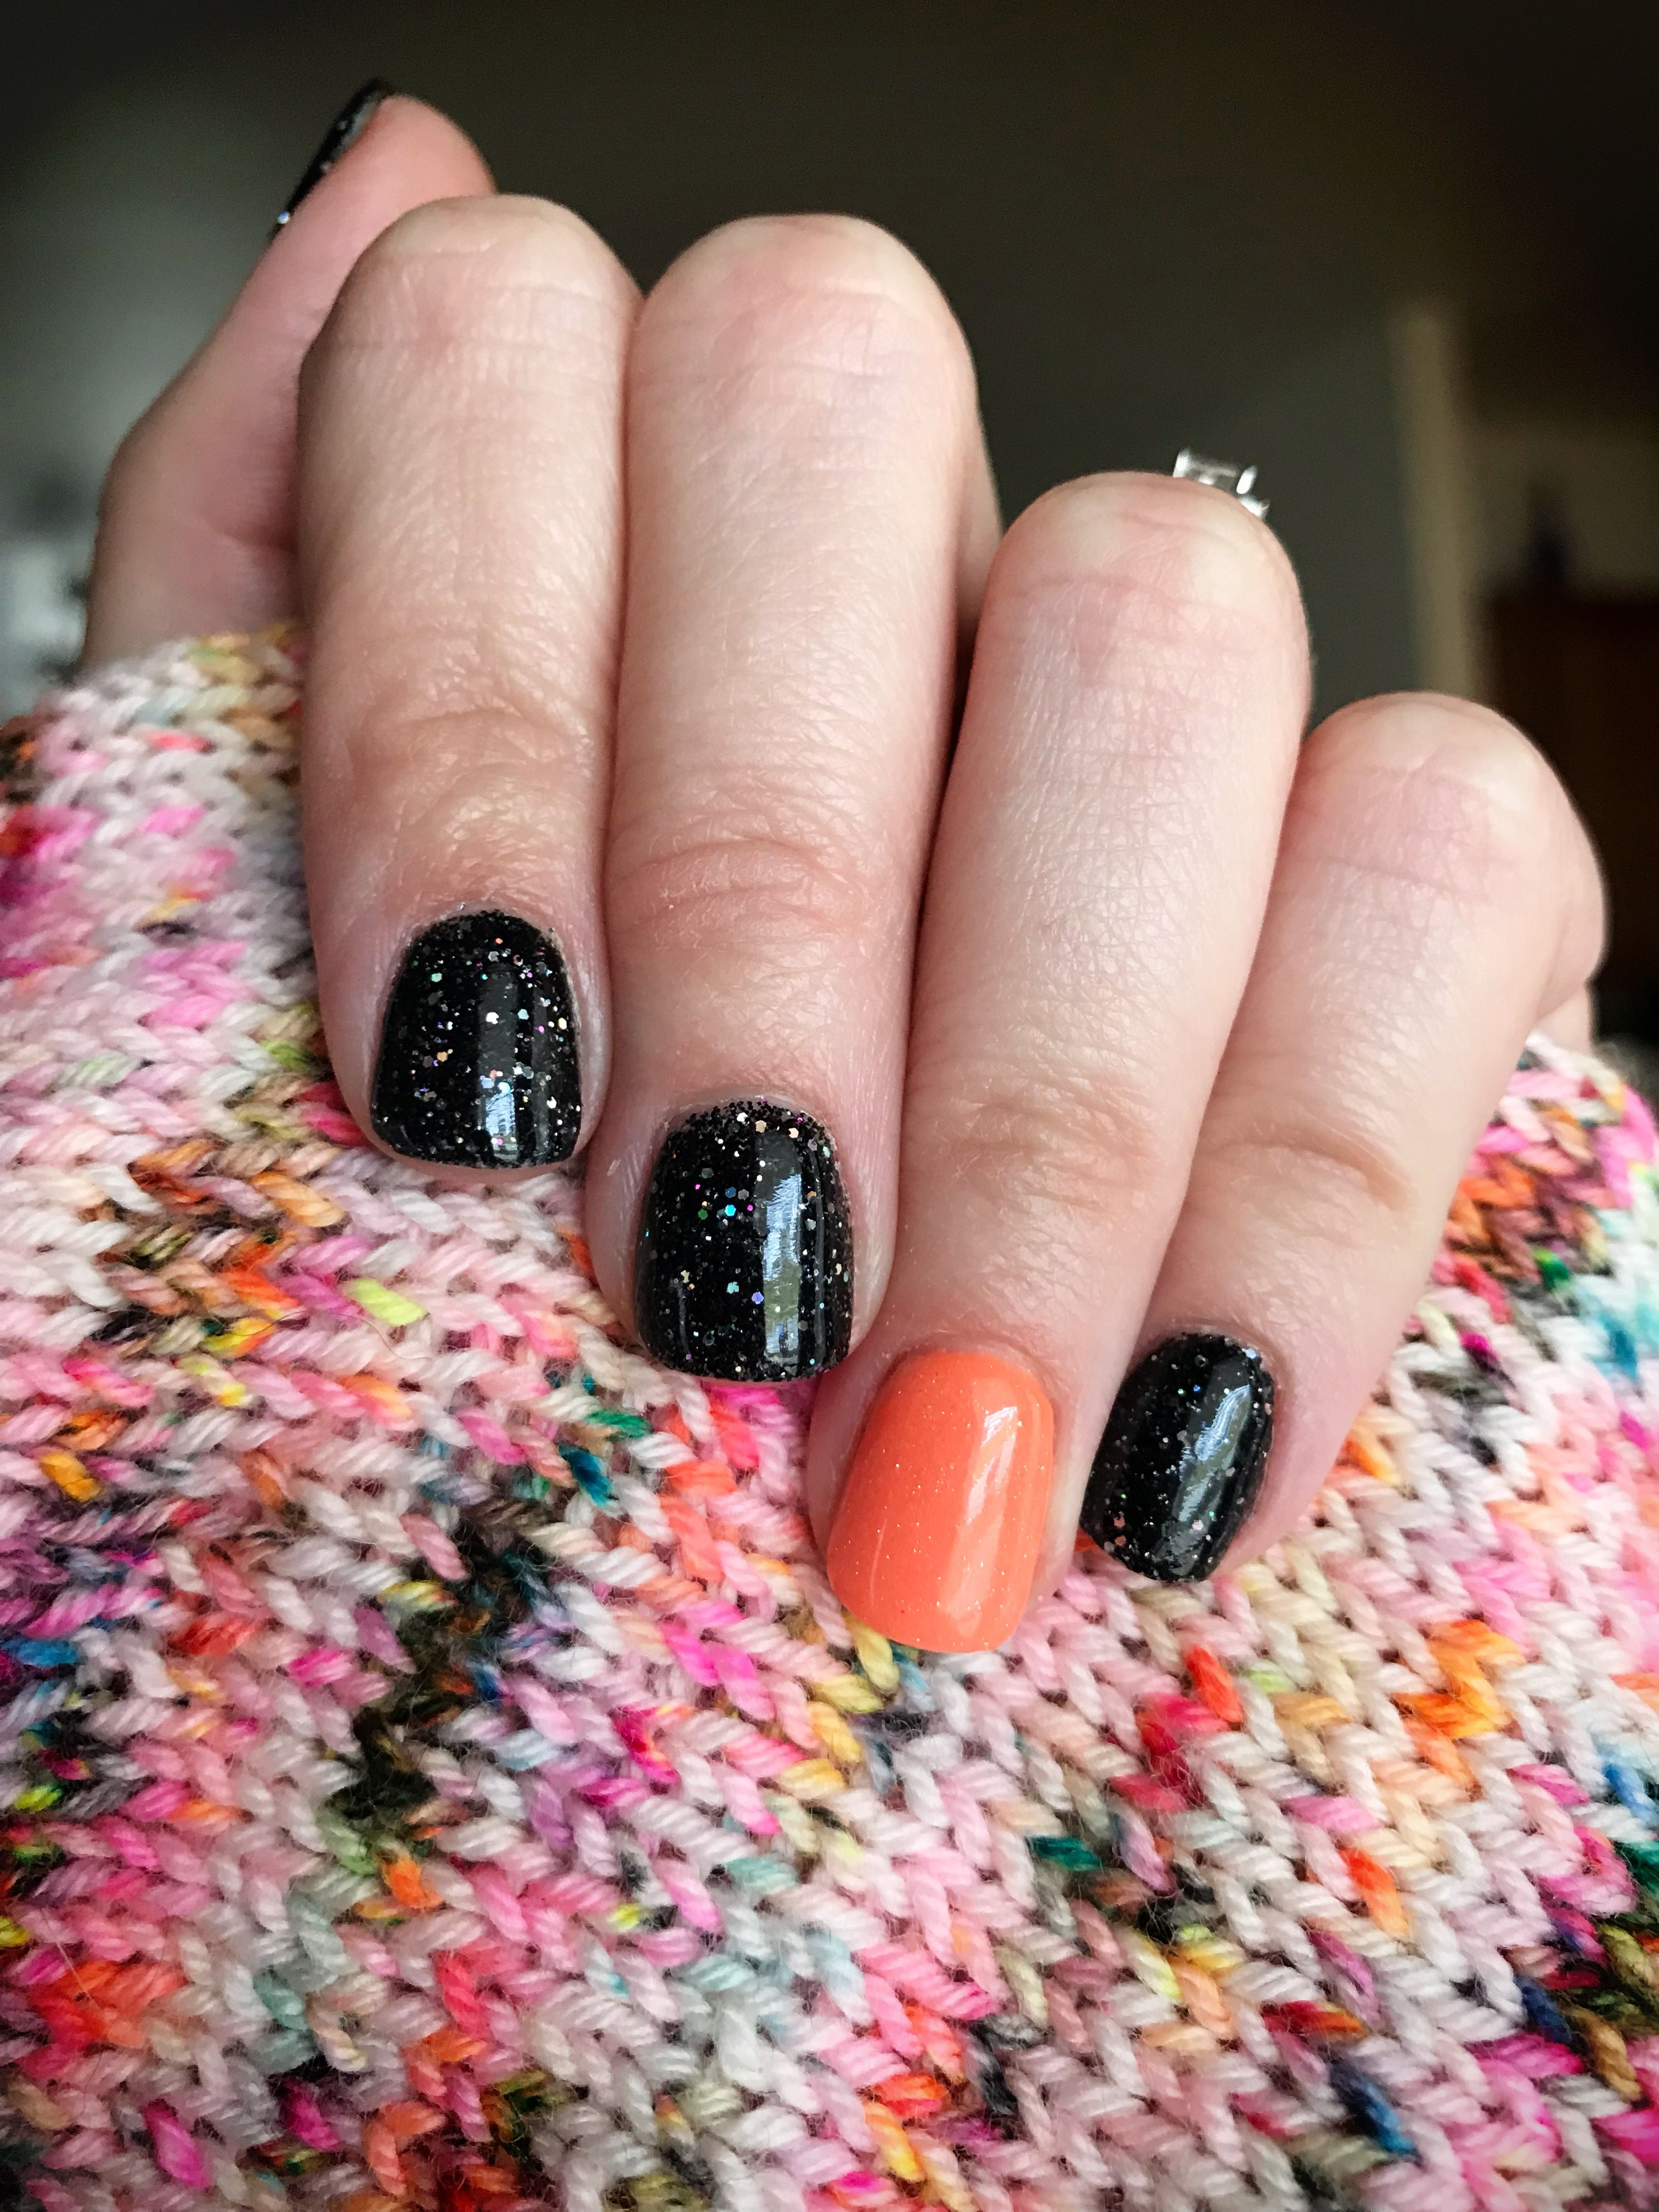 Halloween Manicure Sparkle Co In This Is My Costume Sb23 Accent Nail In 2 Dips Trick Or Treat Yo Self Sb Dip Gel Nails Dipped Nails Halloween Nails